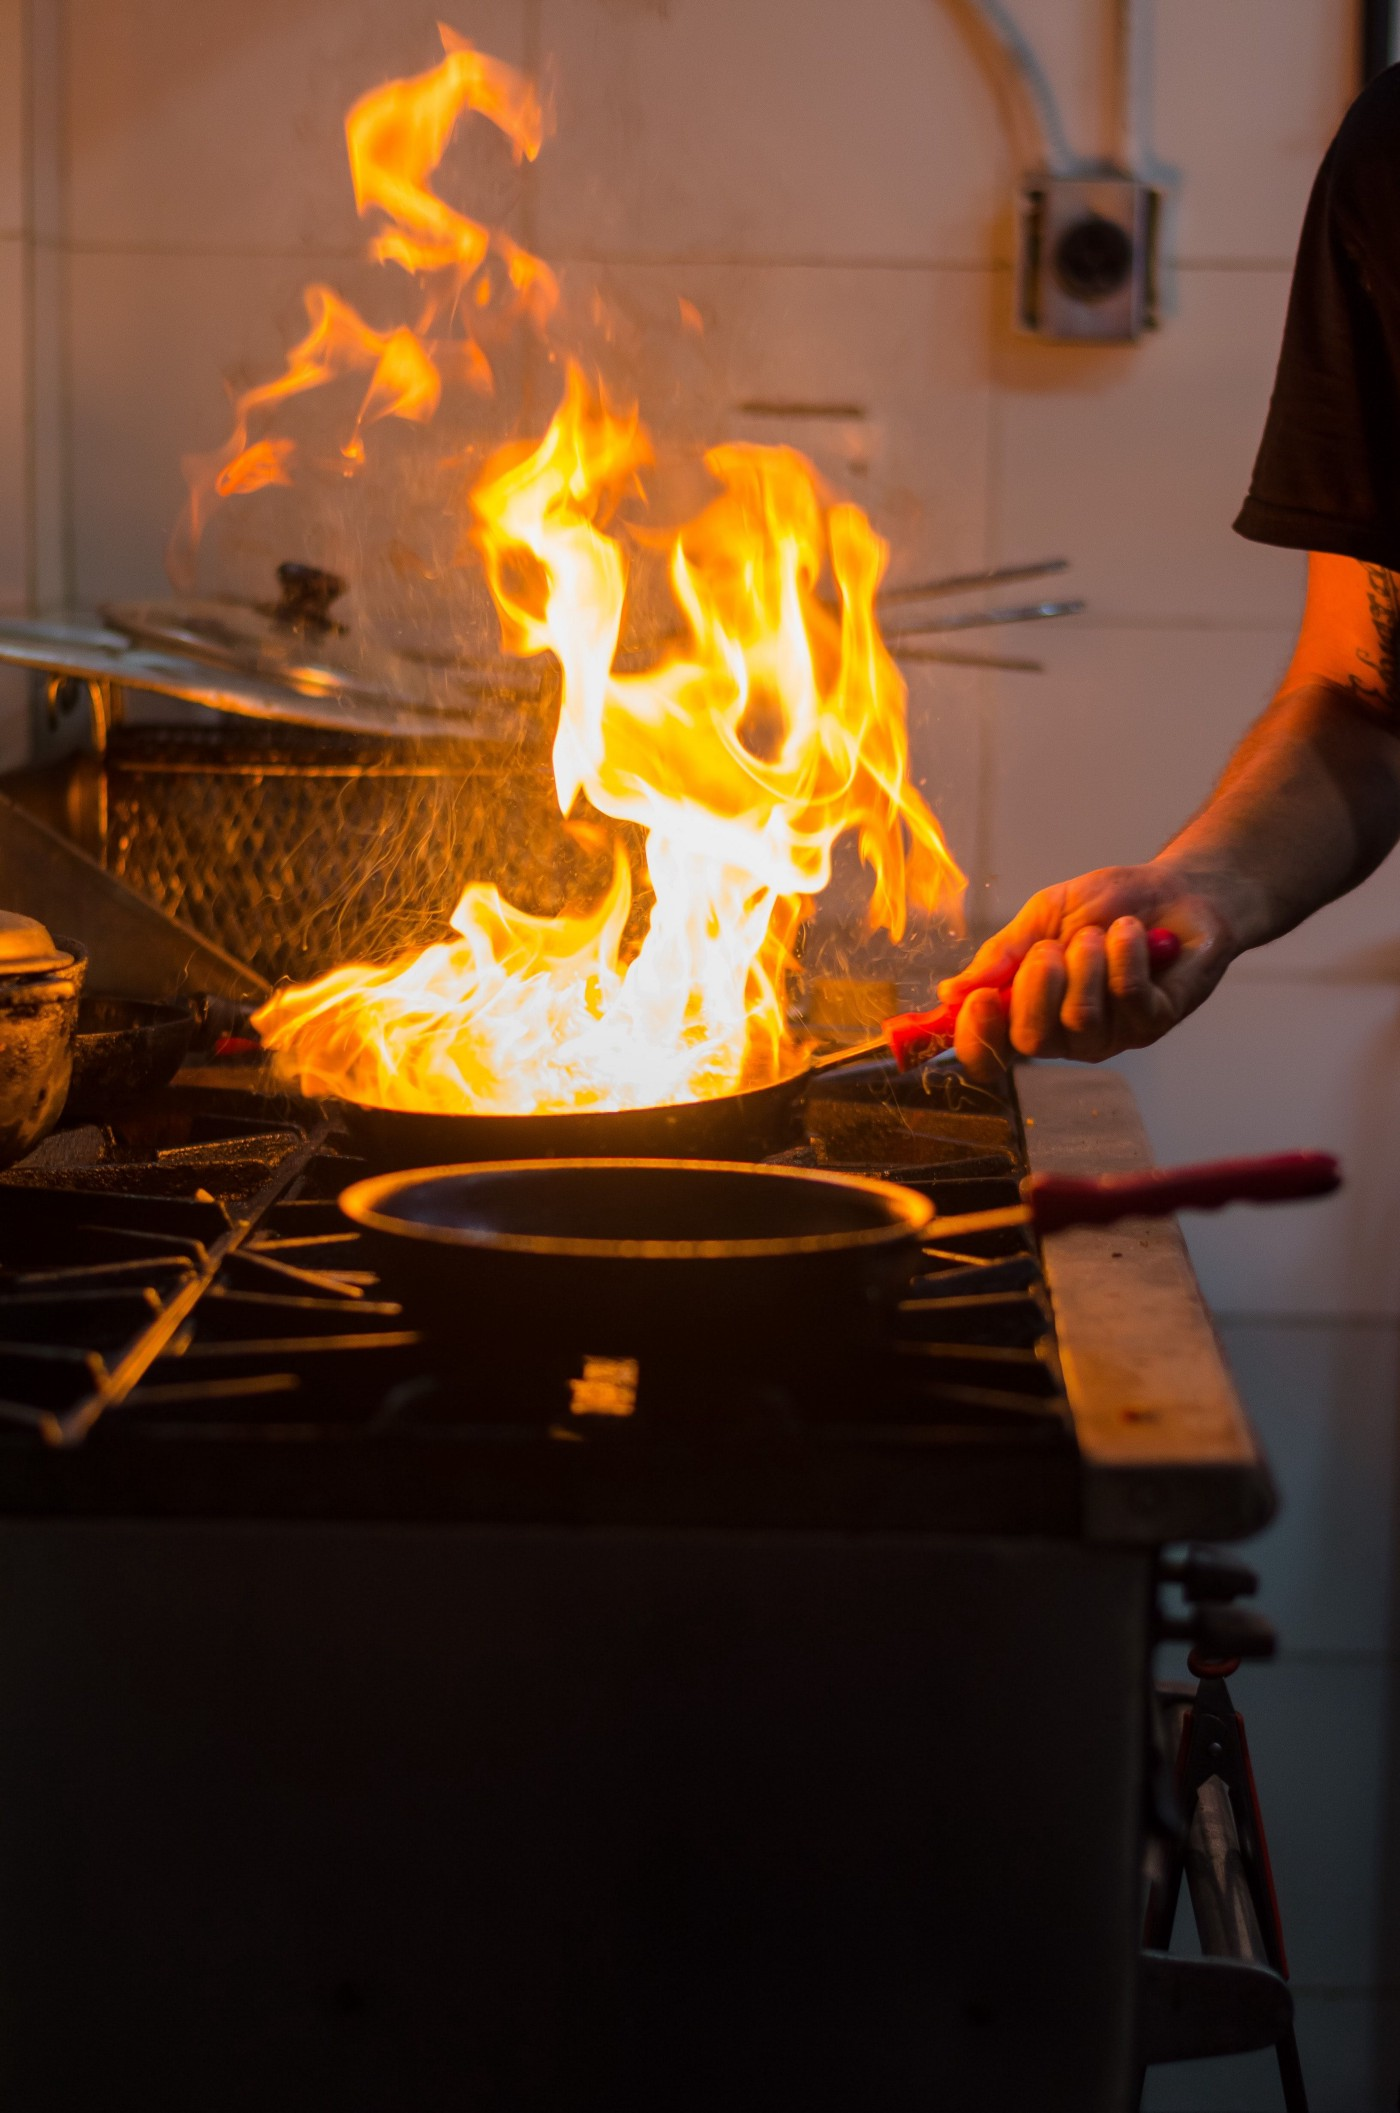 Flaming saute pan in an industrial kitchen